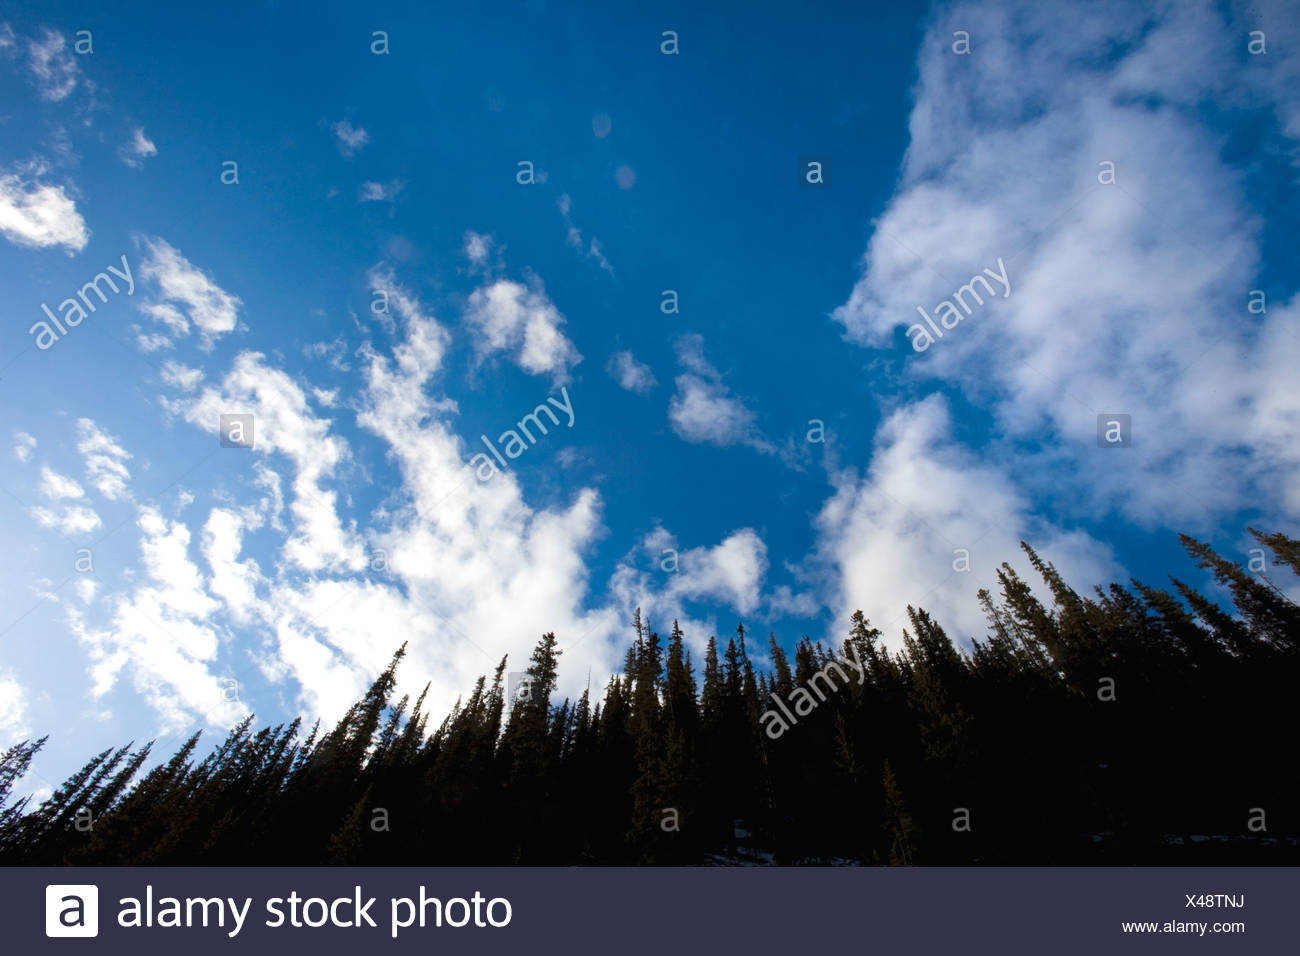 Looking up at evergreen trees - Stock Image